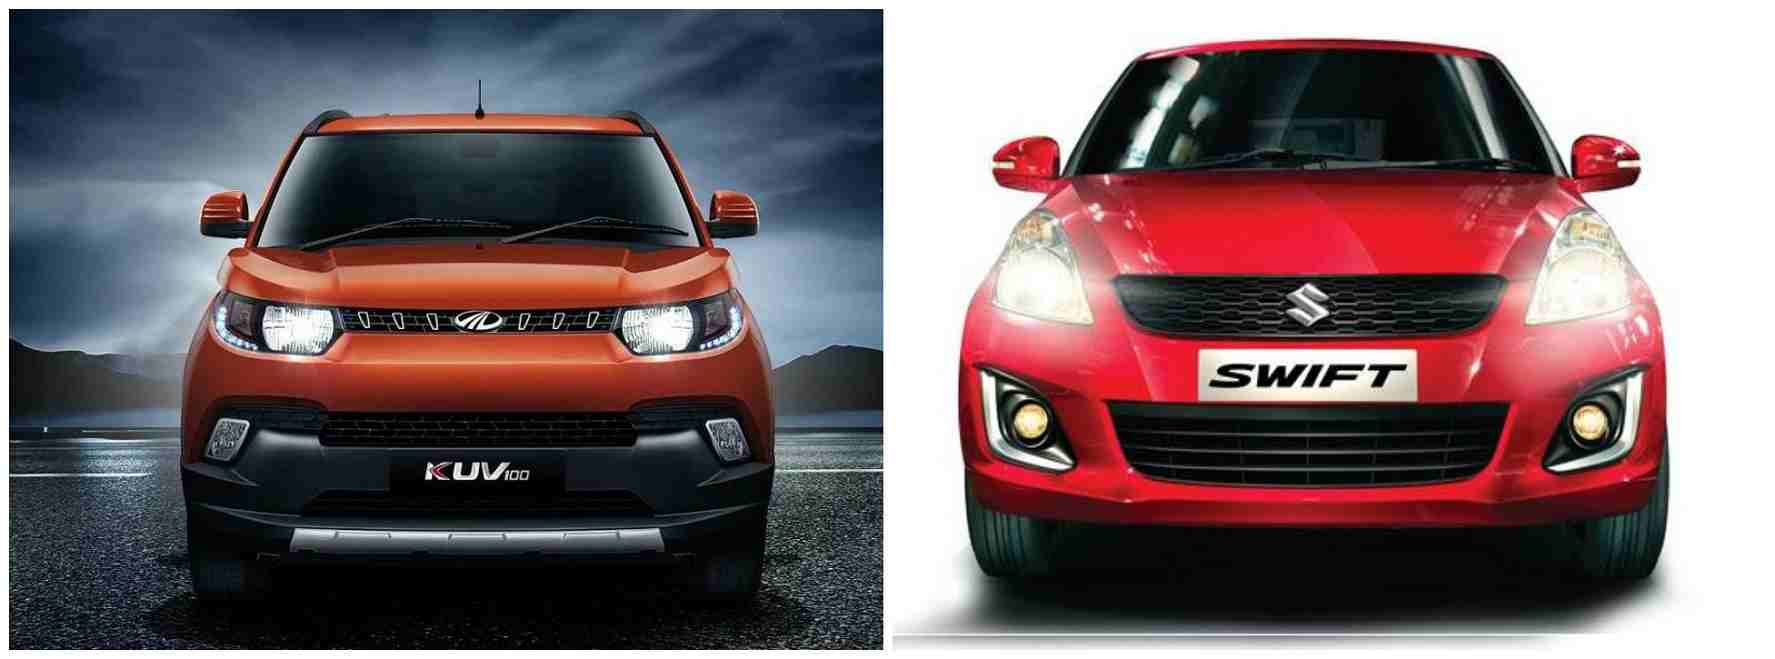 Mahindra KUV100 Vs Maruti Swift Specs Comparison